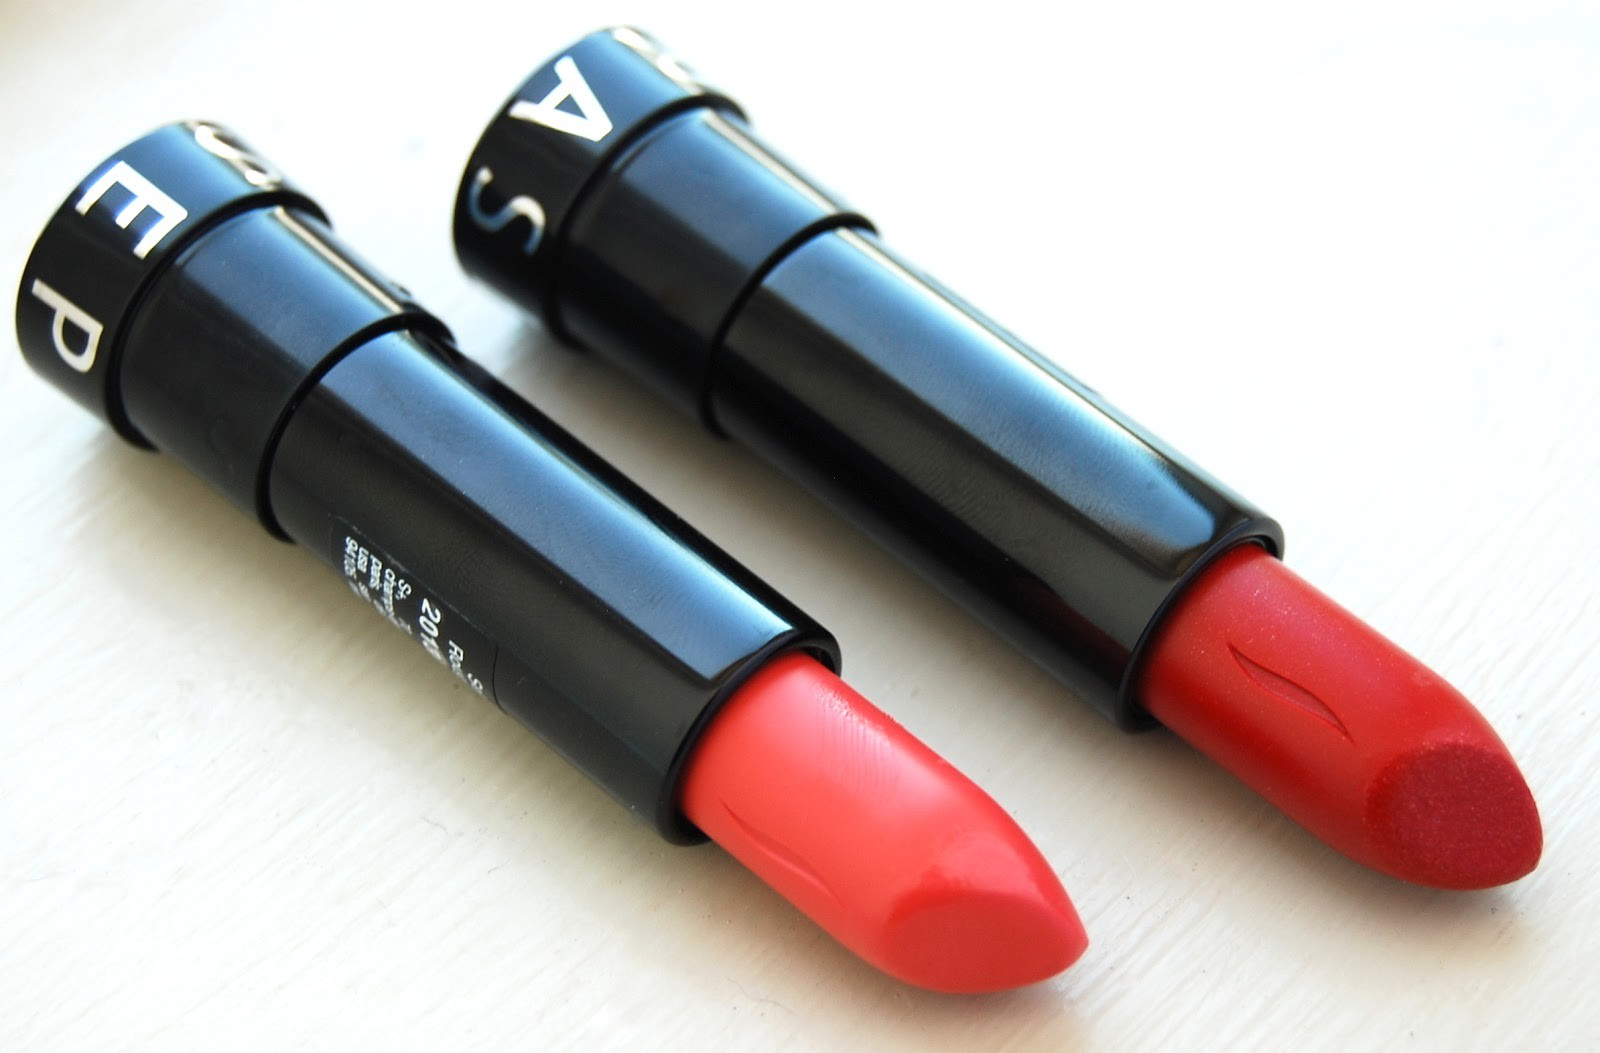 Sephora Collection Rouge Shine Lipstick in No 28 Just Married and No 33 Get Rich